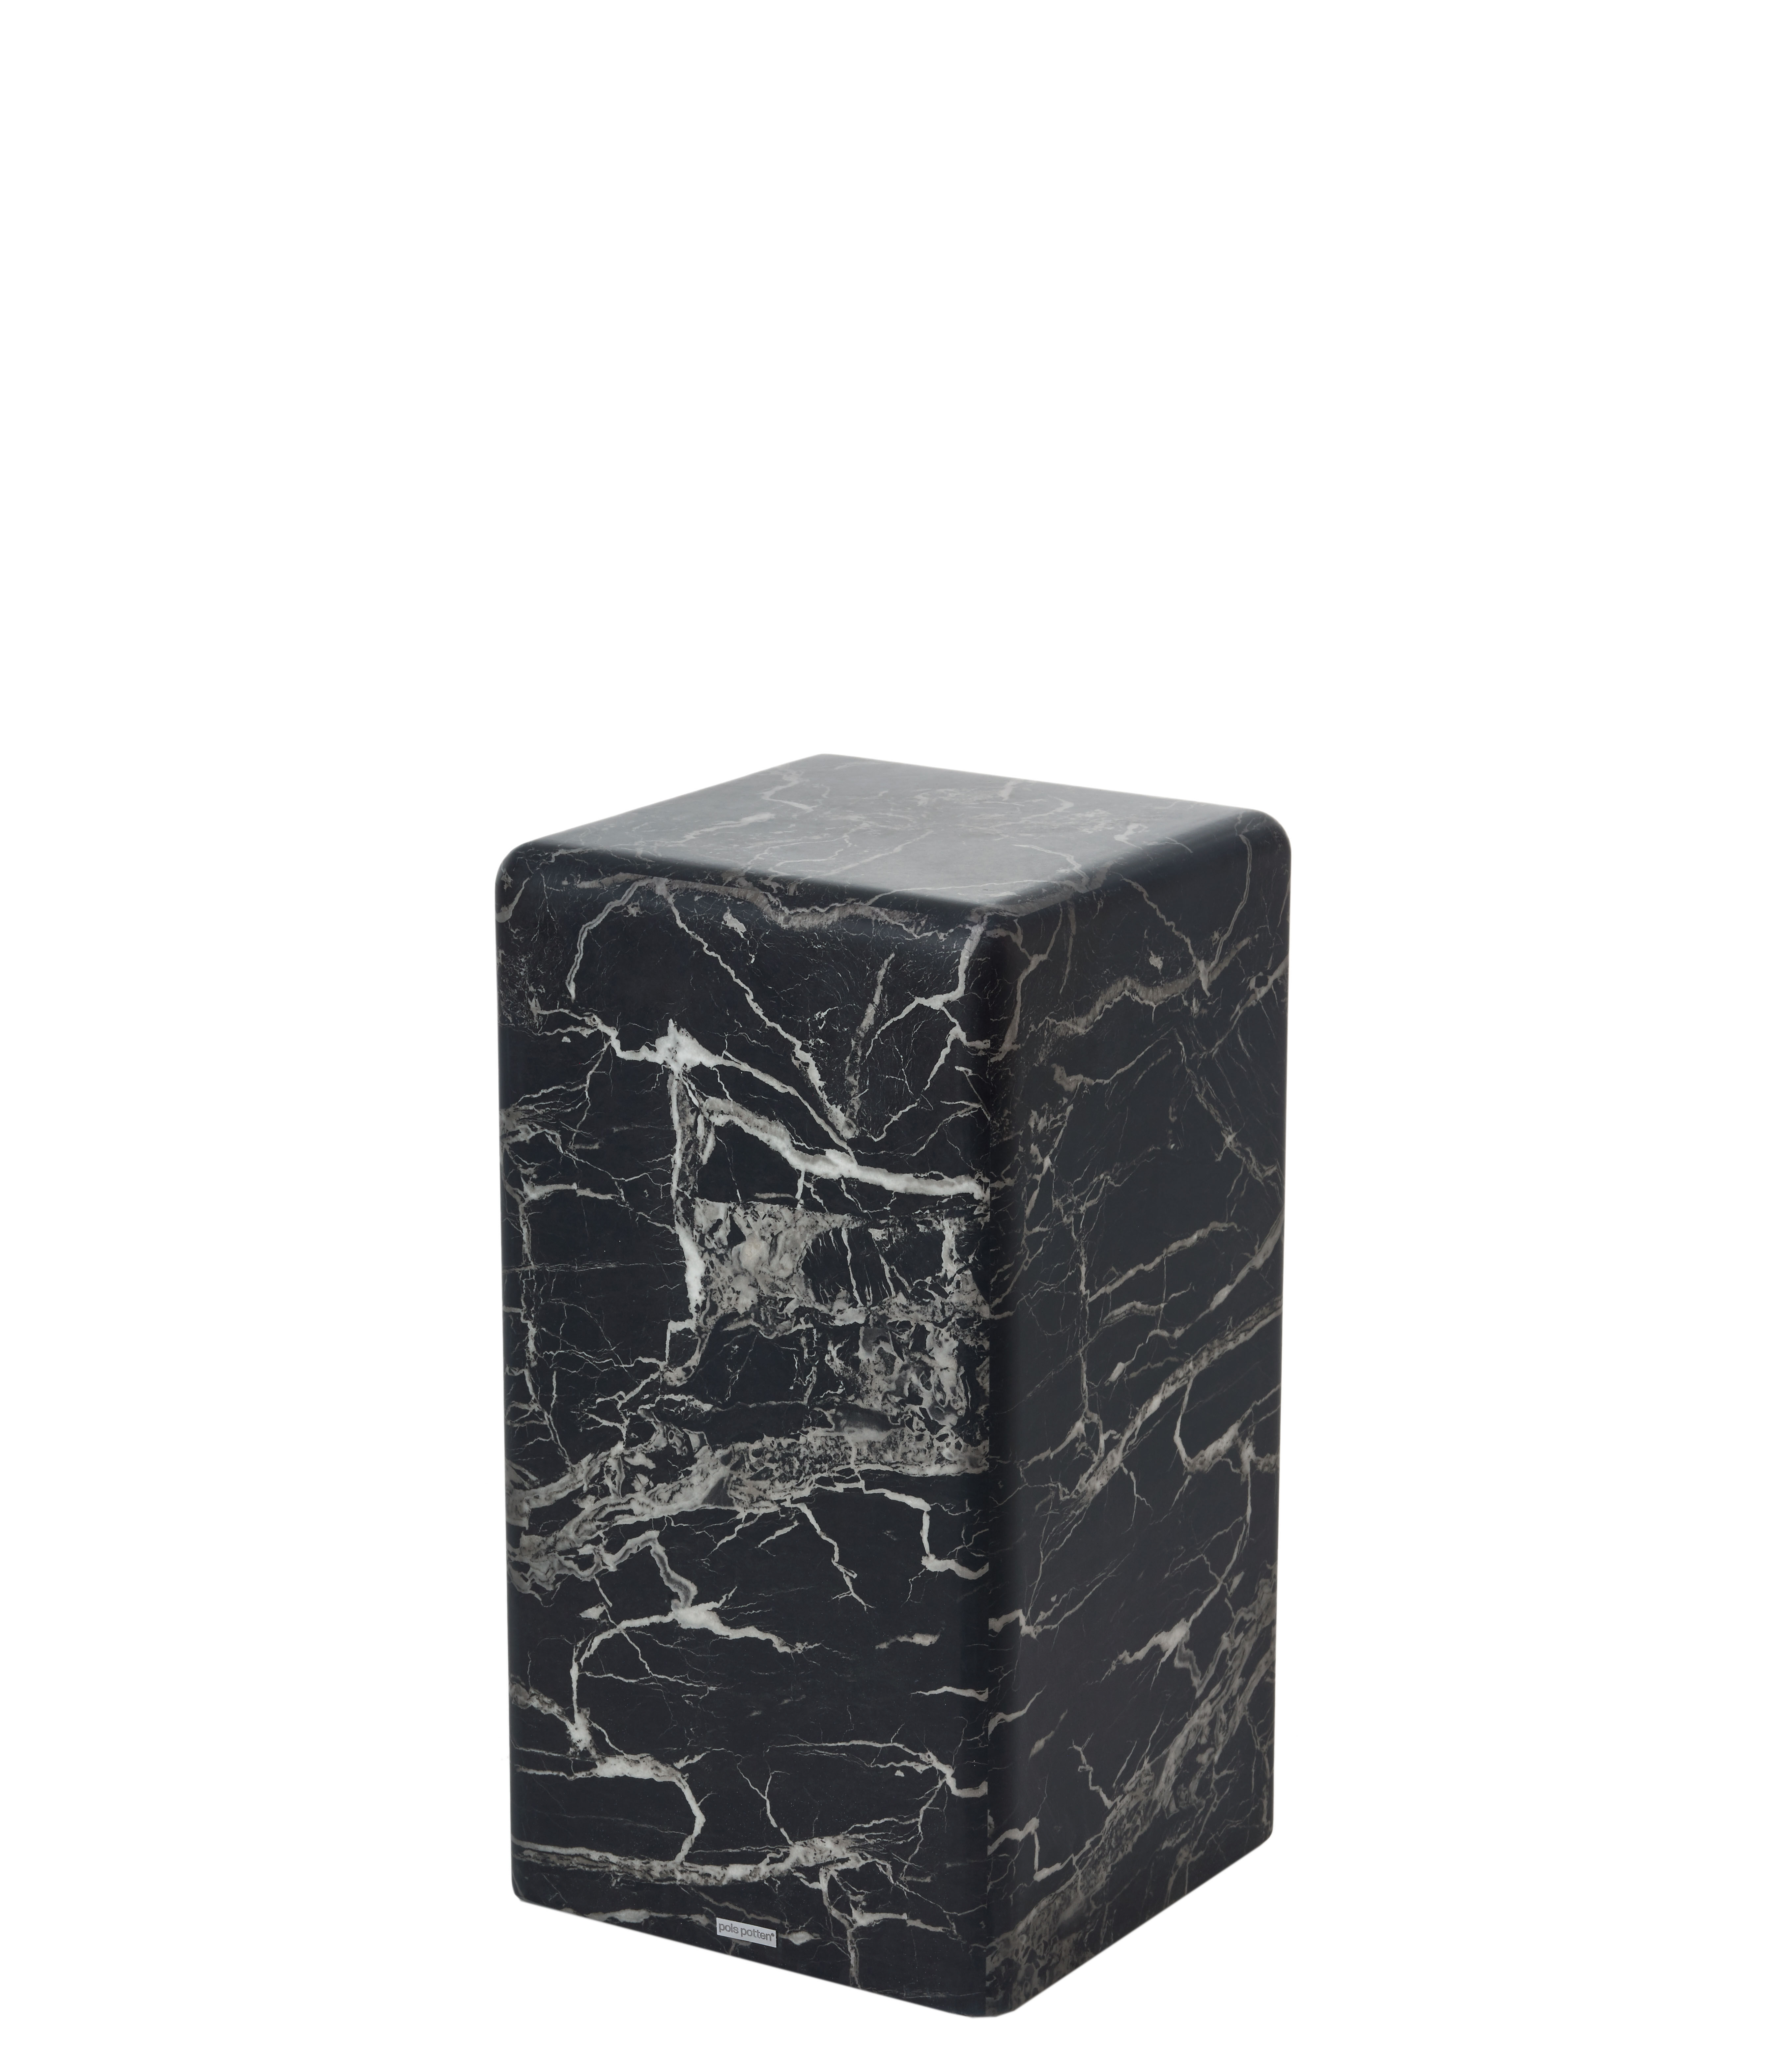 Furniture - Coffee Tables - Marble look Small End table - / H 61 cm - Marble effect by Pols Potten - Black - MDF, Resin